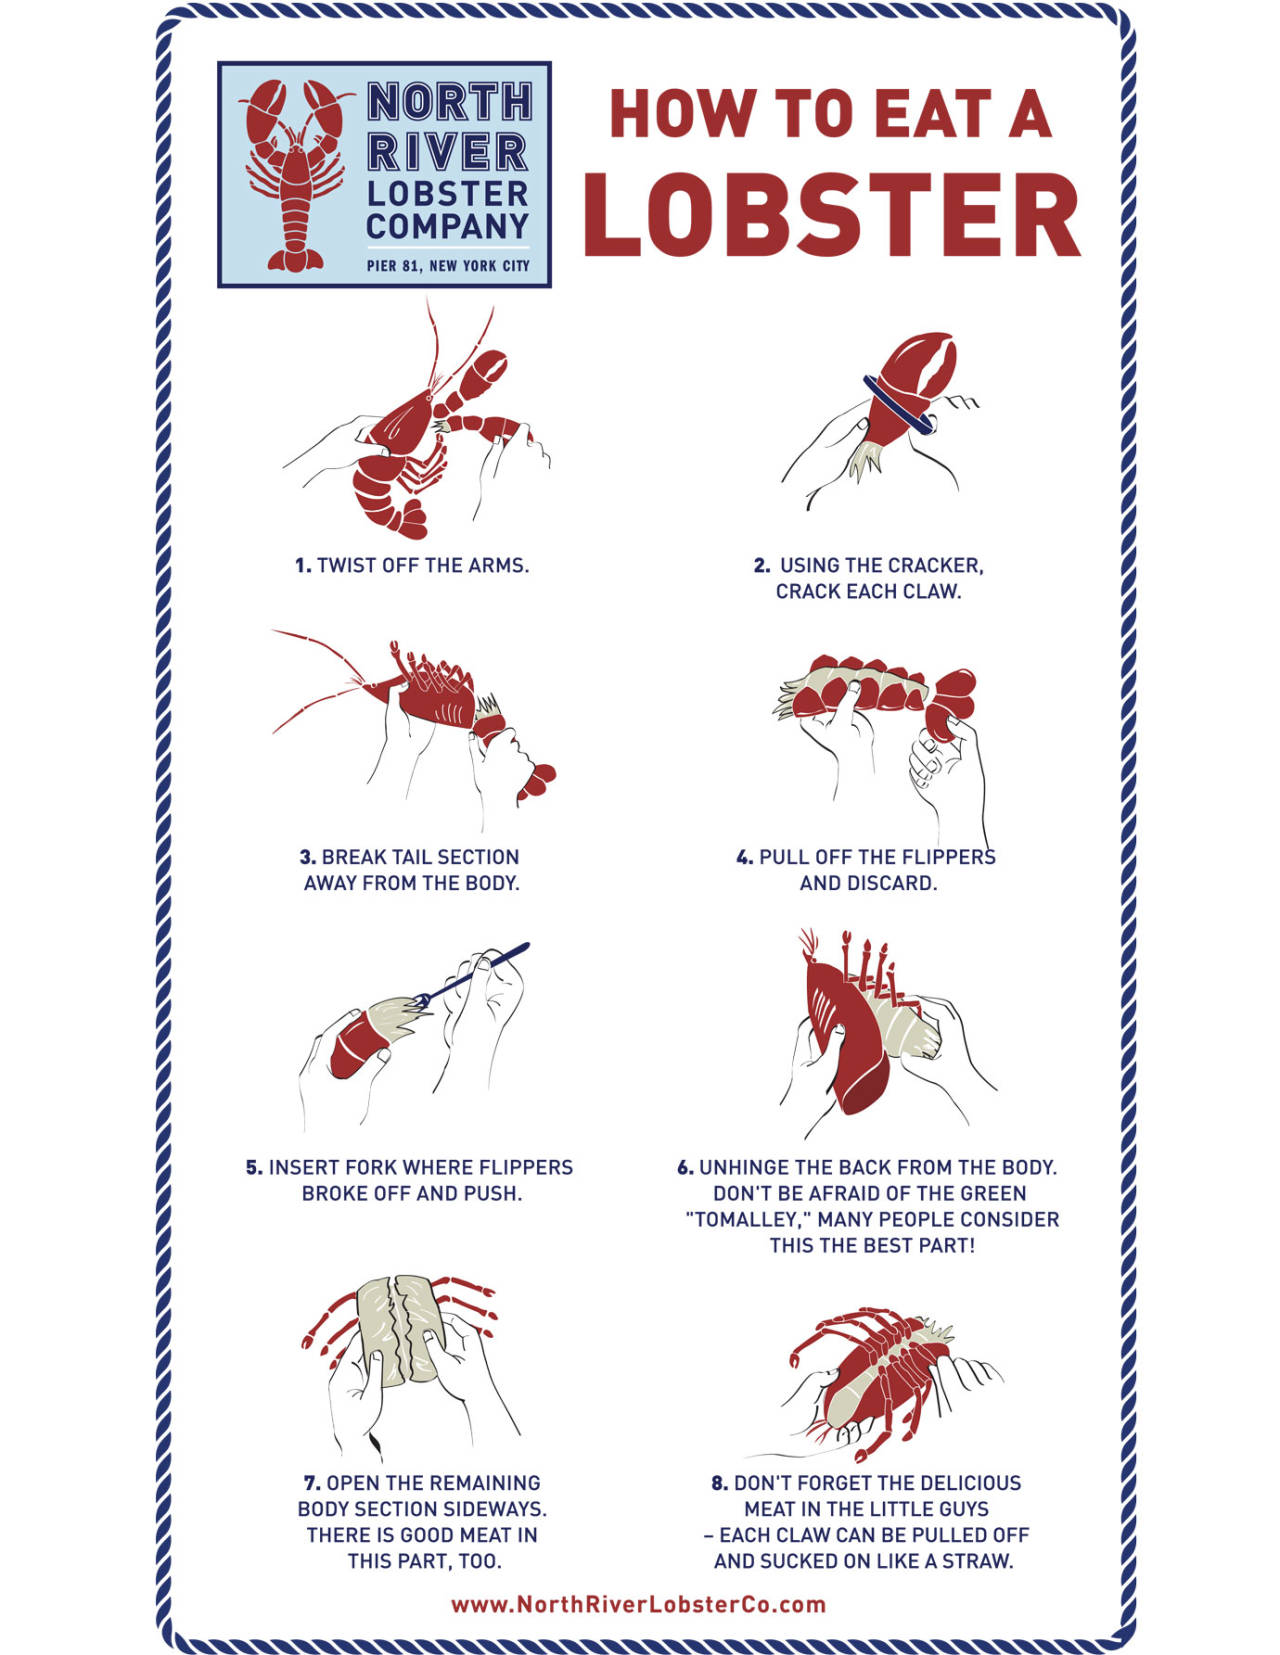 How To Eat A Lobster - Correct Way To Eat A Lobster